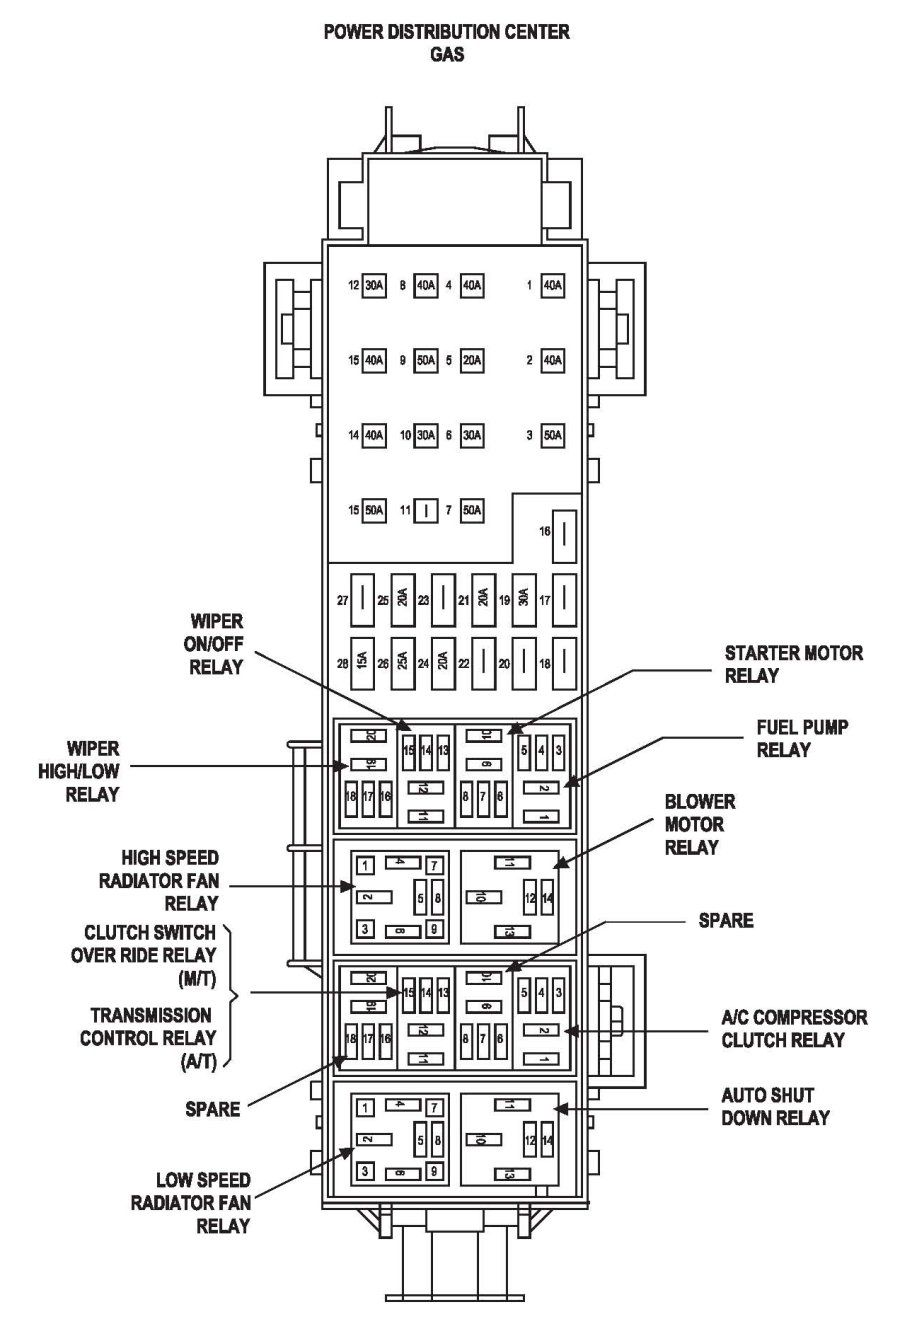 b3536c3739783eb19f827744cc42c3c4 jeep liberty fuse box diagram image details jeep liberty 2007 jeep liberty fuse box diagram at readyjetset.co